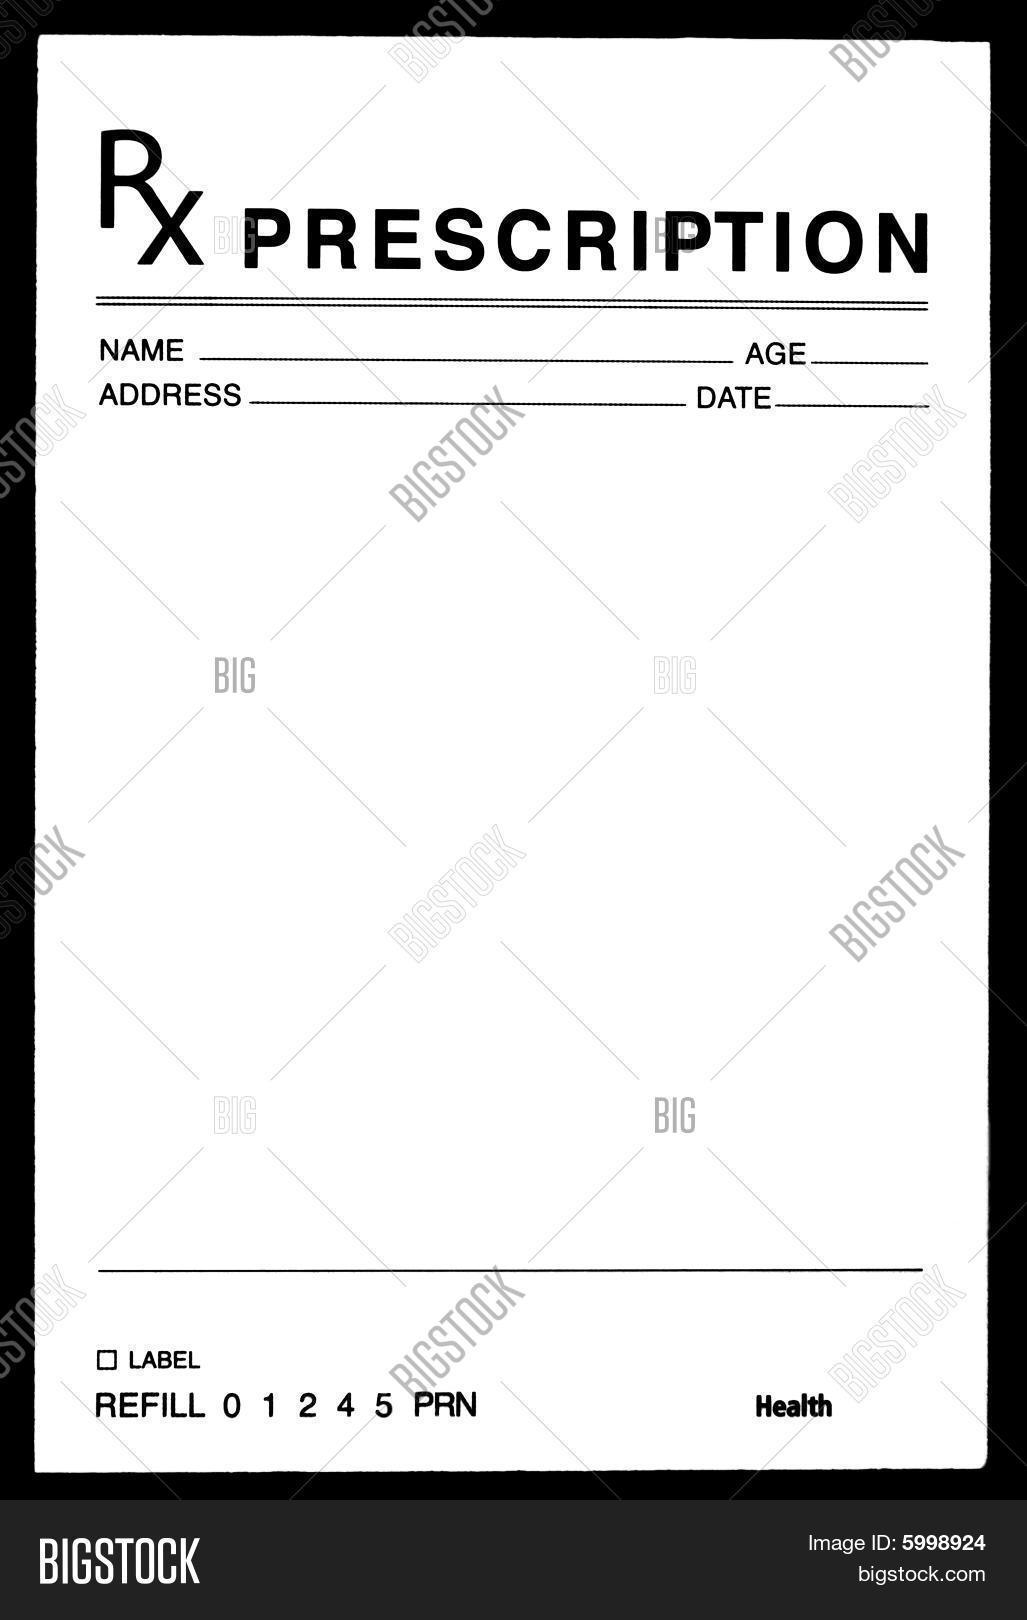 Blank Prescription Image Photo Free Trial